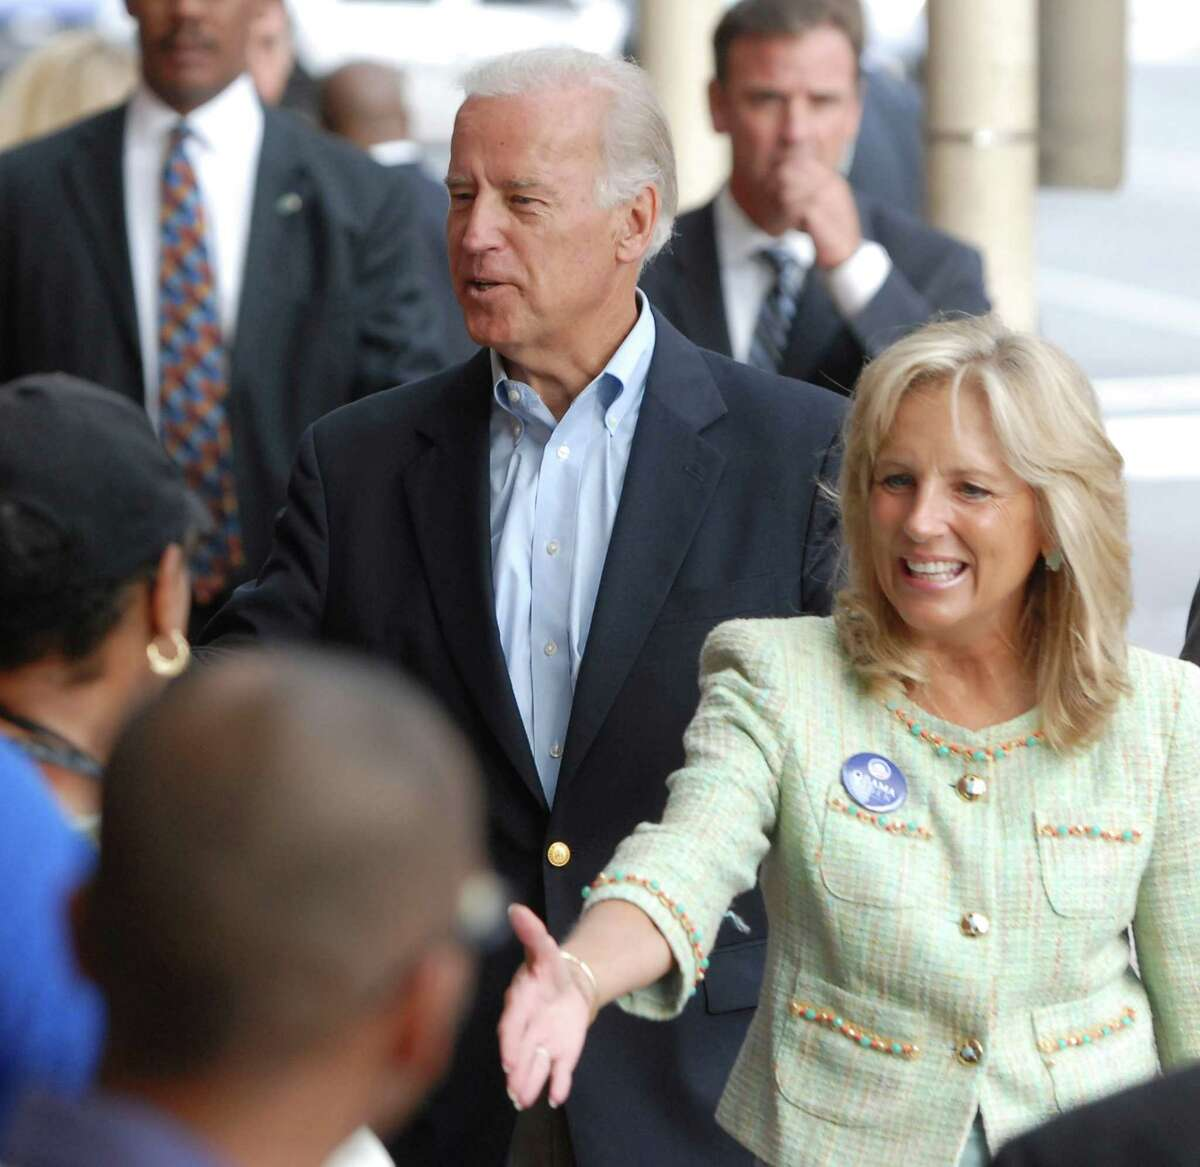 In this Aug. 25, 2008 file photo, Sen. Joe Biden,D-Del., left, and his wife Jill Biden, right, made a surprise appearance at the Amtrak train station in Wilmington, Del., he has used for years to commute to his day job in the U.S. Senate.